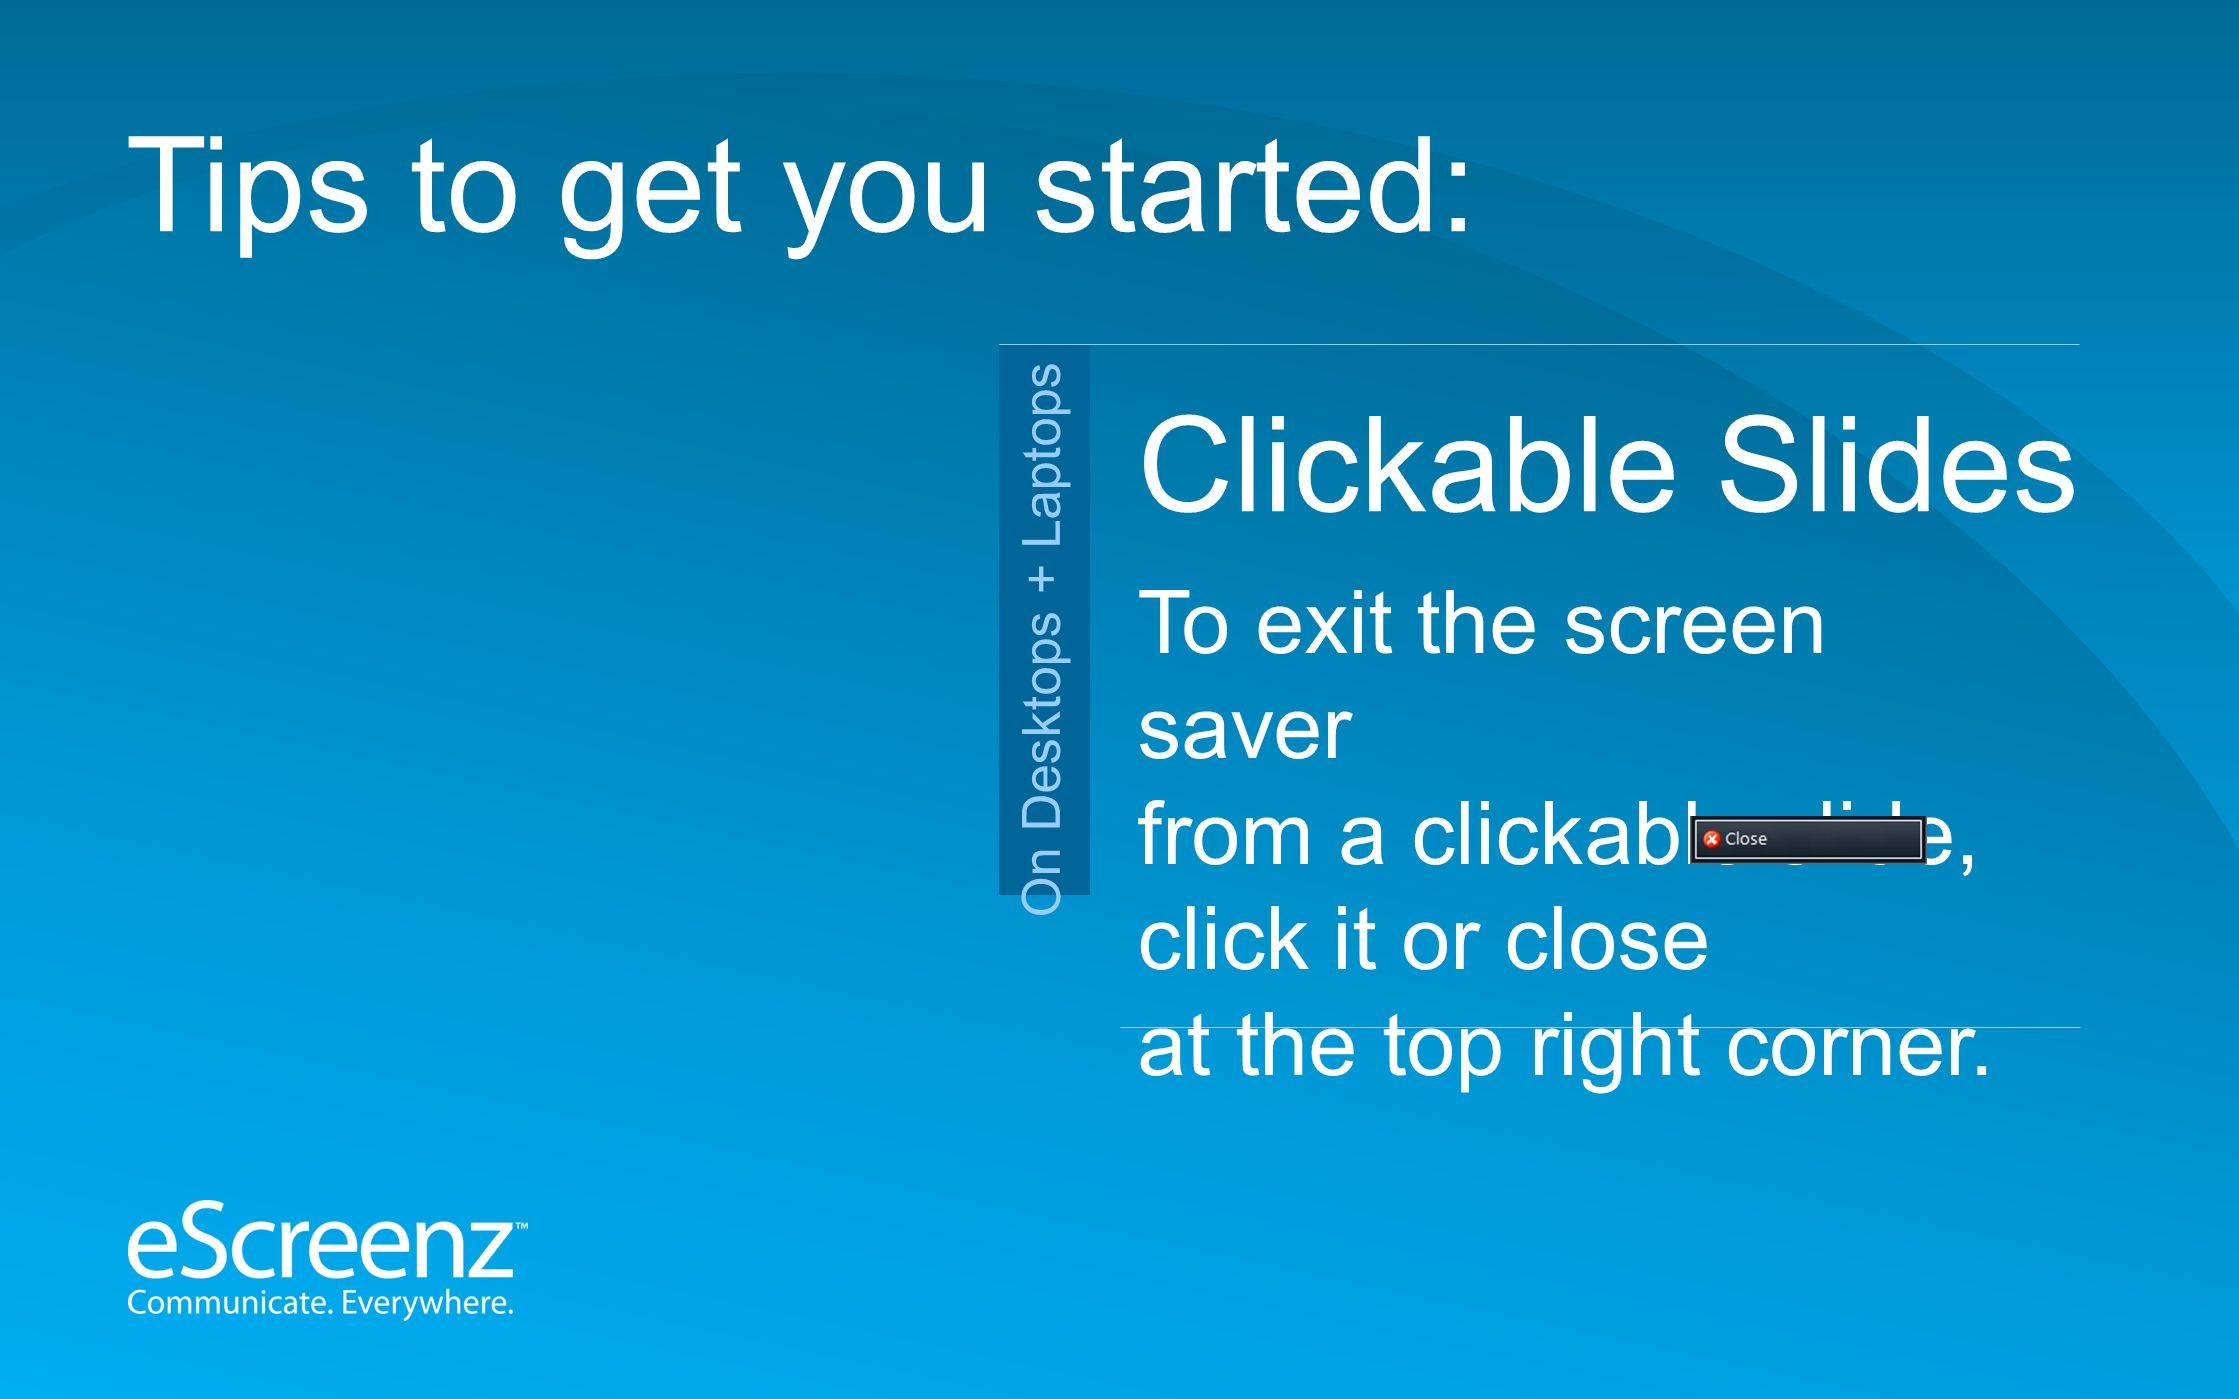 Clickable Slides Tips to get you started: To exit the screen saver from a clickable slide, click it or close at the top right corner.